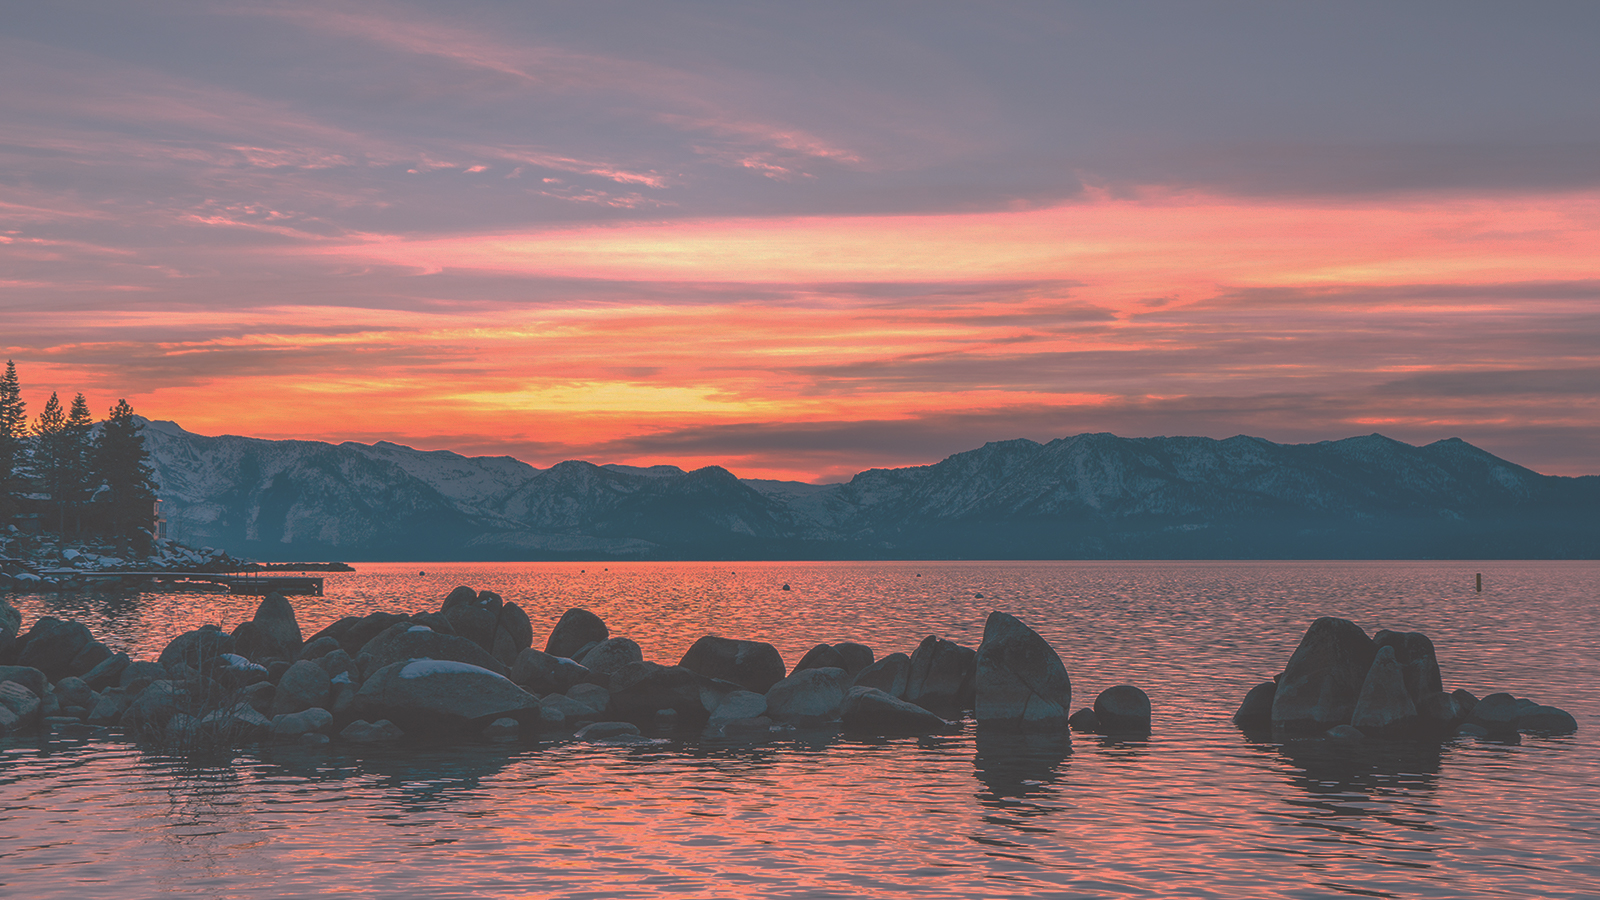 DONATE TO THE TAHOE FUND - SOUTH LAKE TAHOE, CA-NV